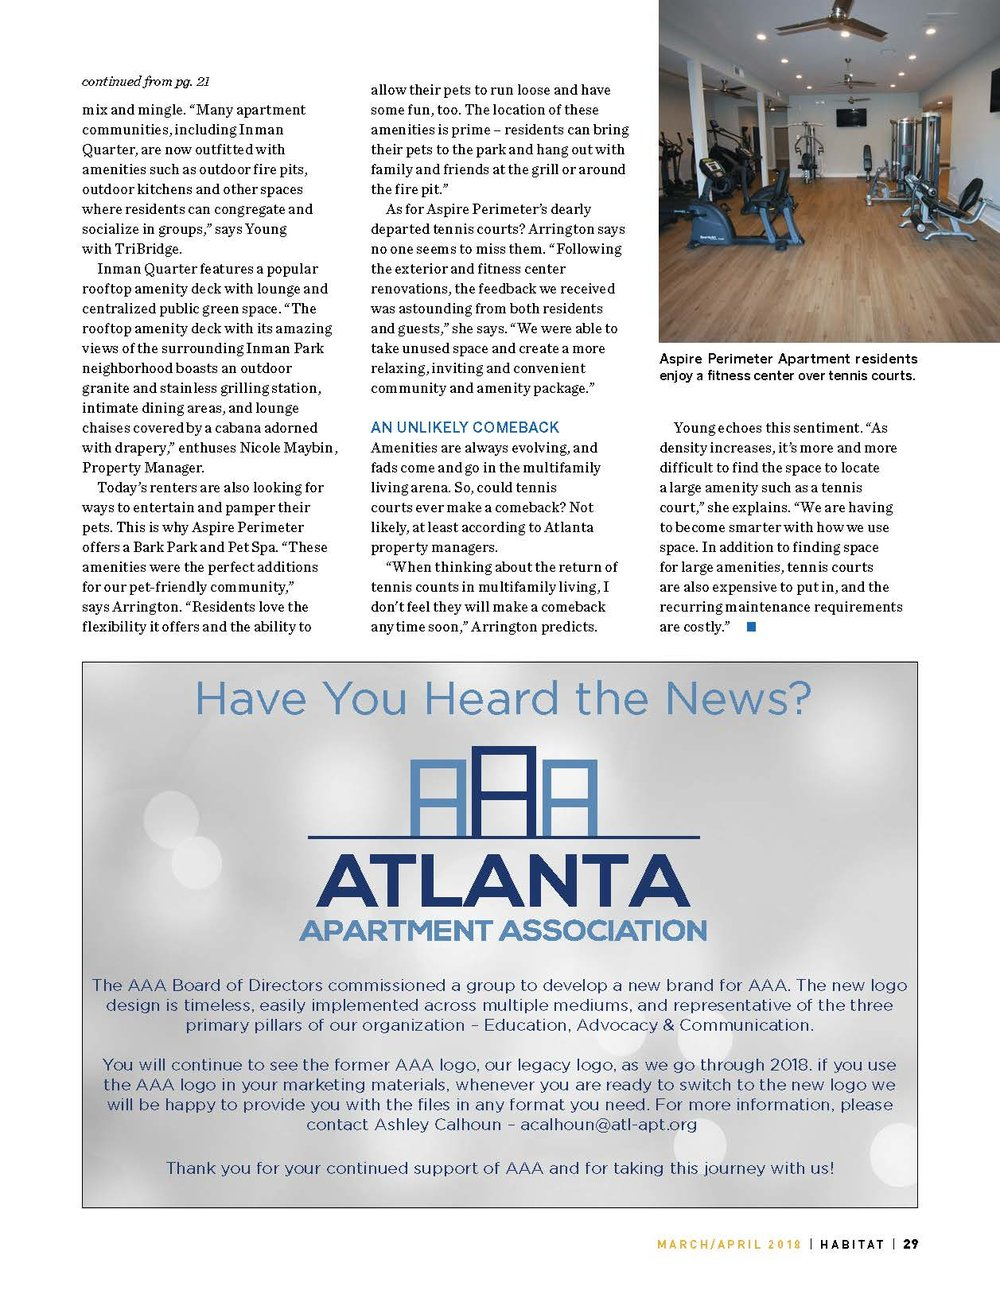 Amenties Article Habitat Magazine_Page_2.jpg